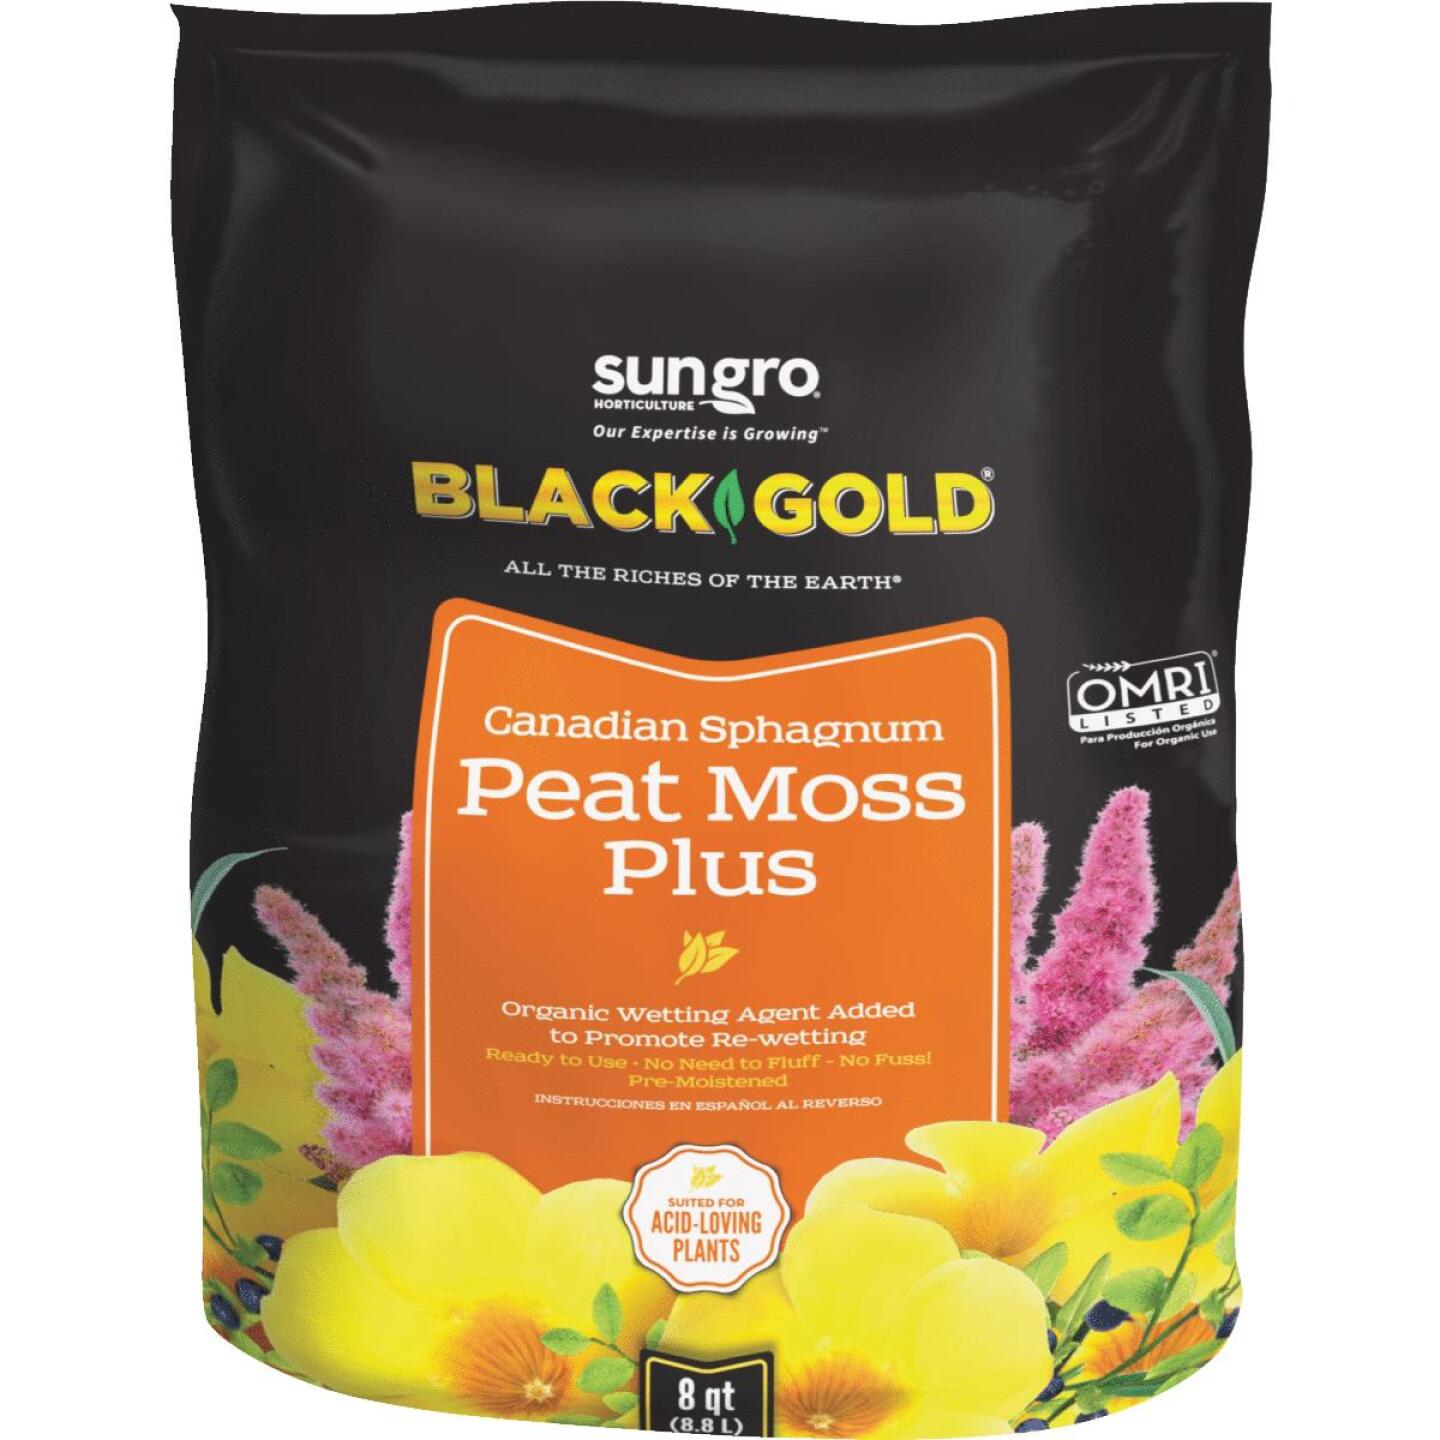 Black Gold 3 Lb. 8 Qt. Sphagnum Peat Moss Plus Image 1